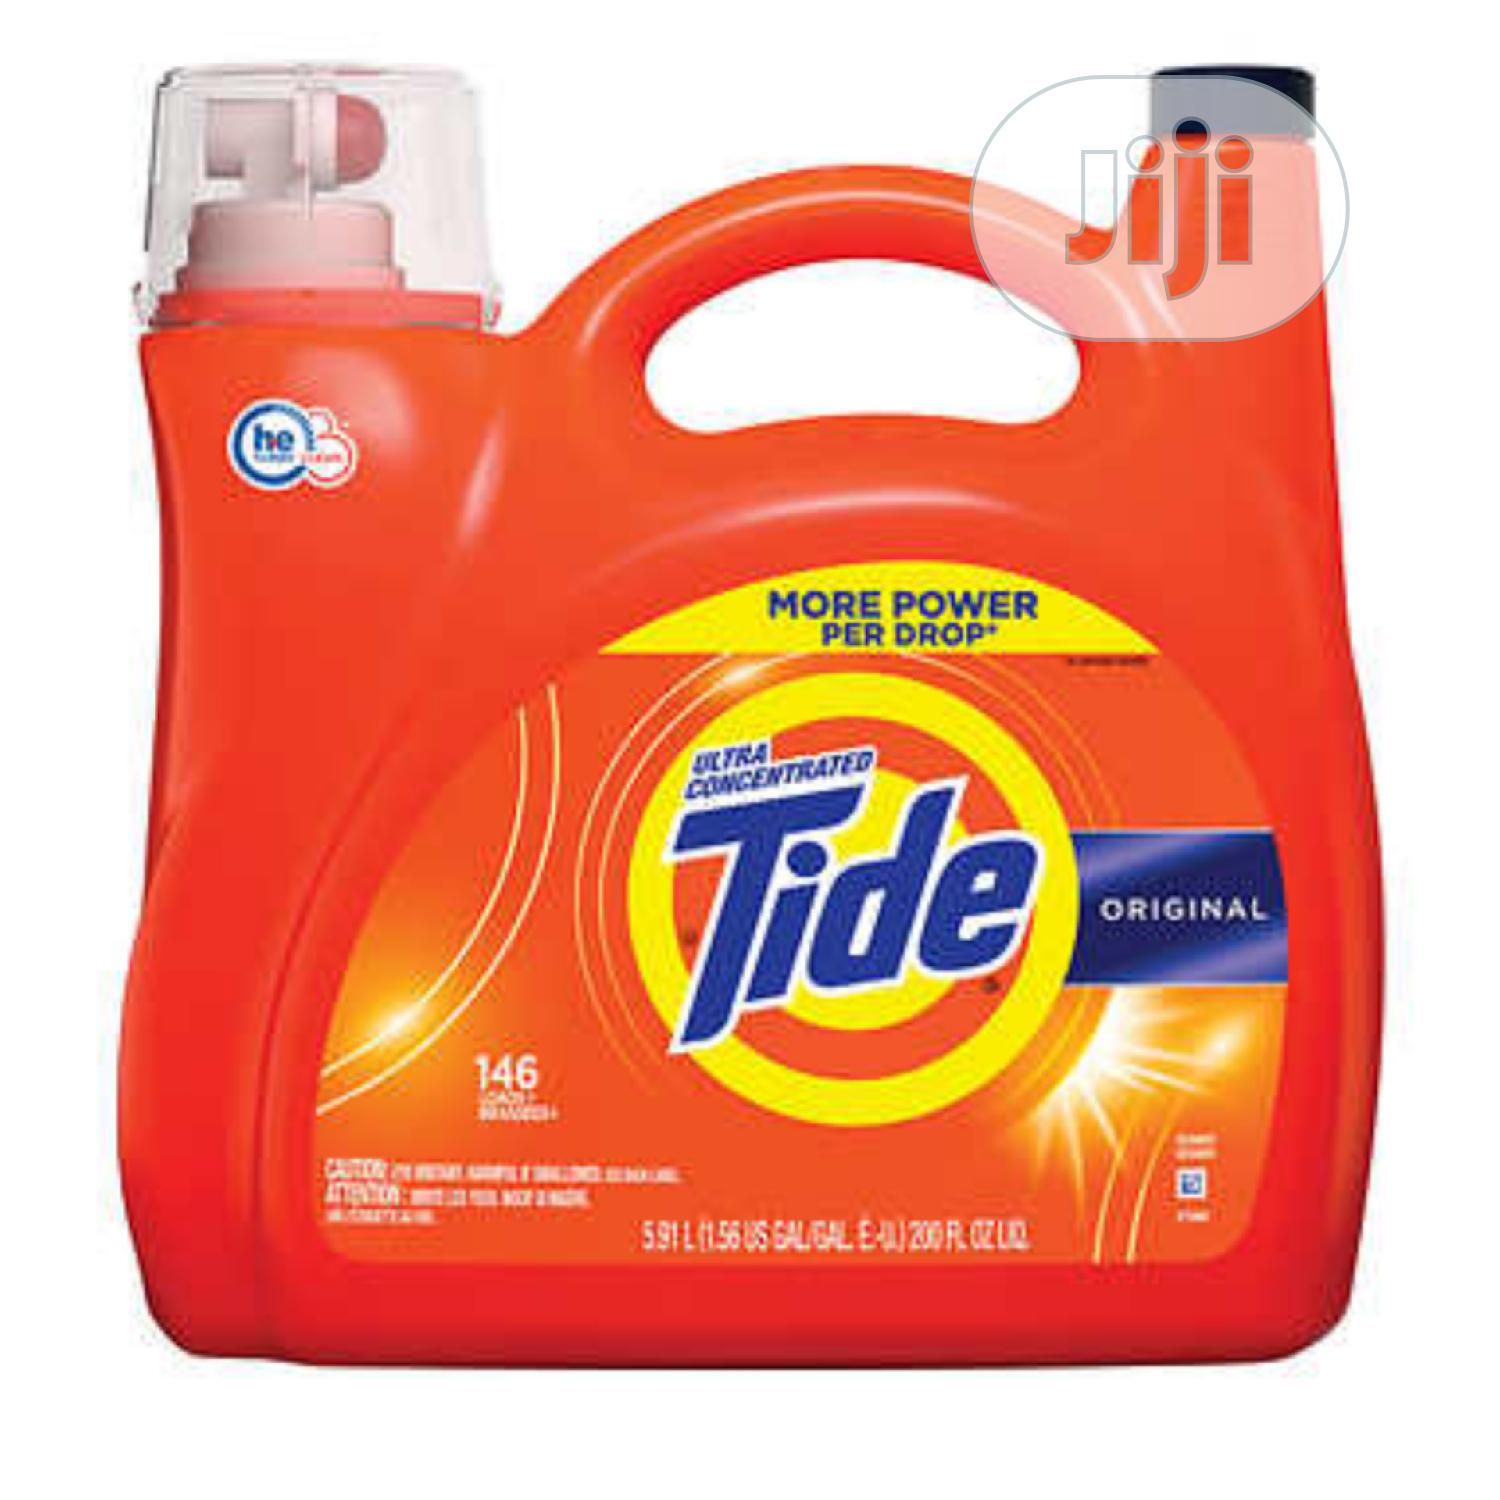 Archive: Tide He Original Liquid Wash/ Detergent (146loads)